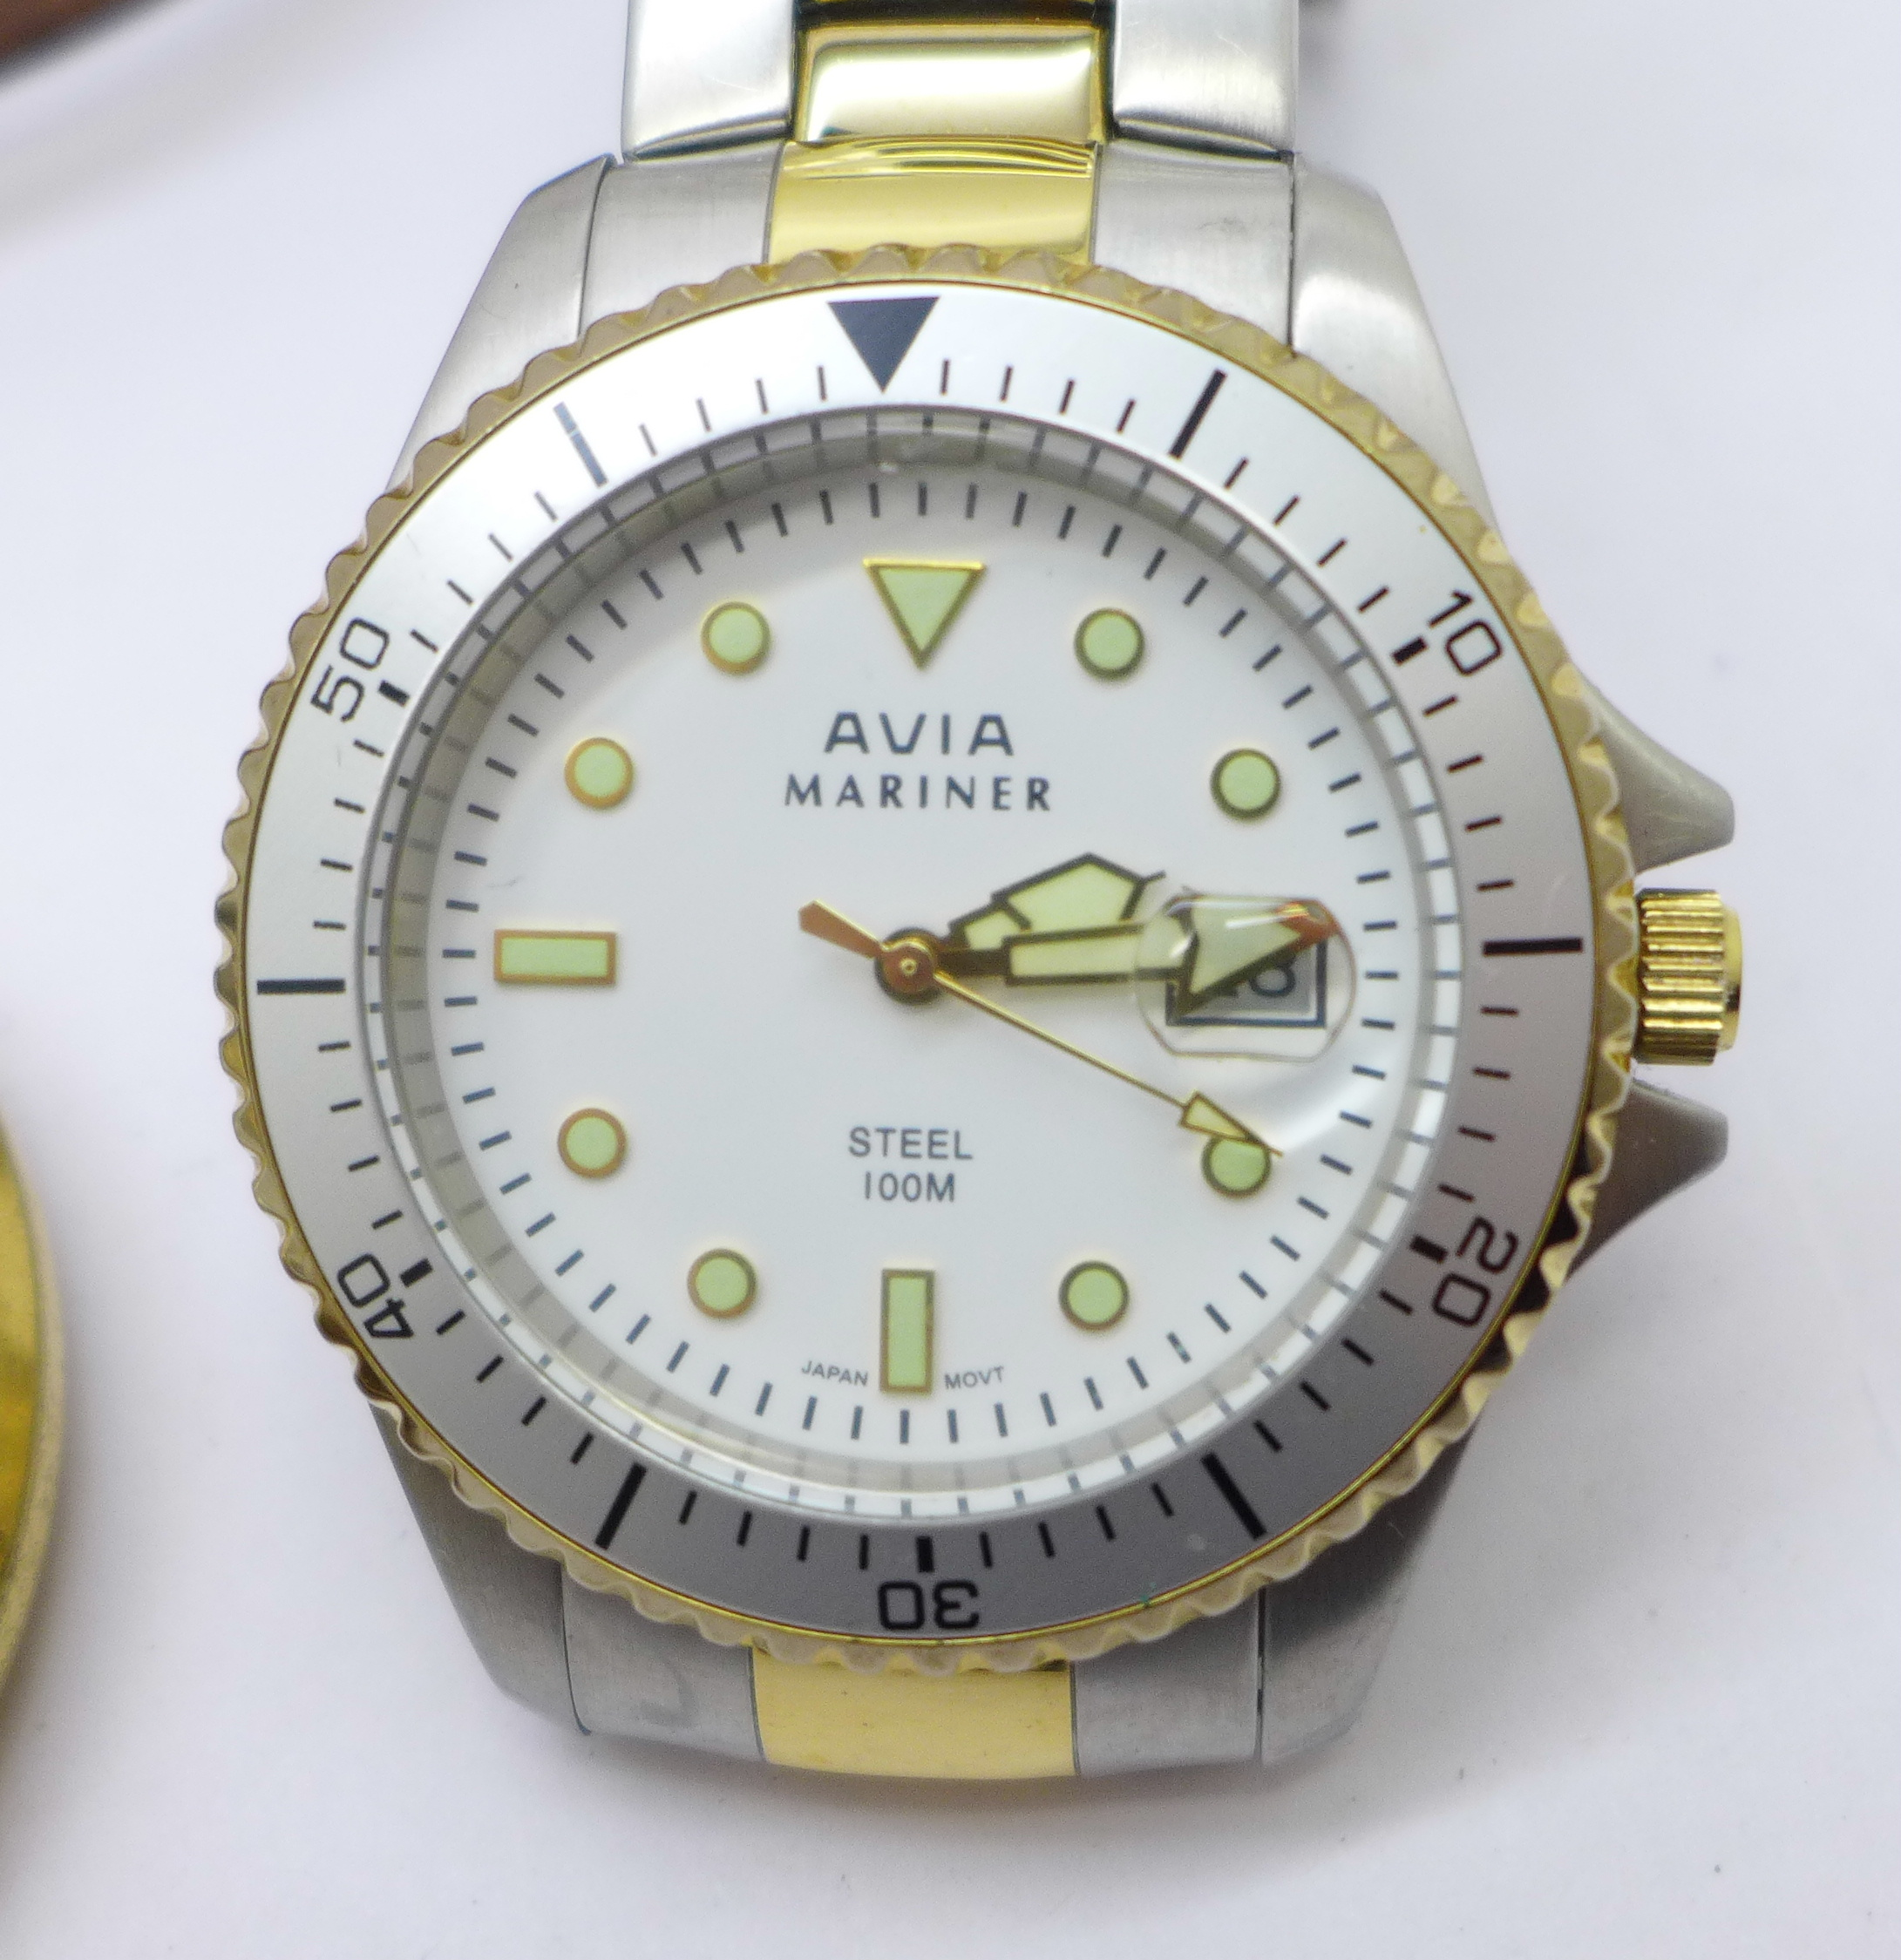 A collection of watches and a pocket watch including Seiko, Avia, Citizen, Emporio Armani and Smiths - Image 2 of 5